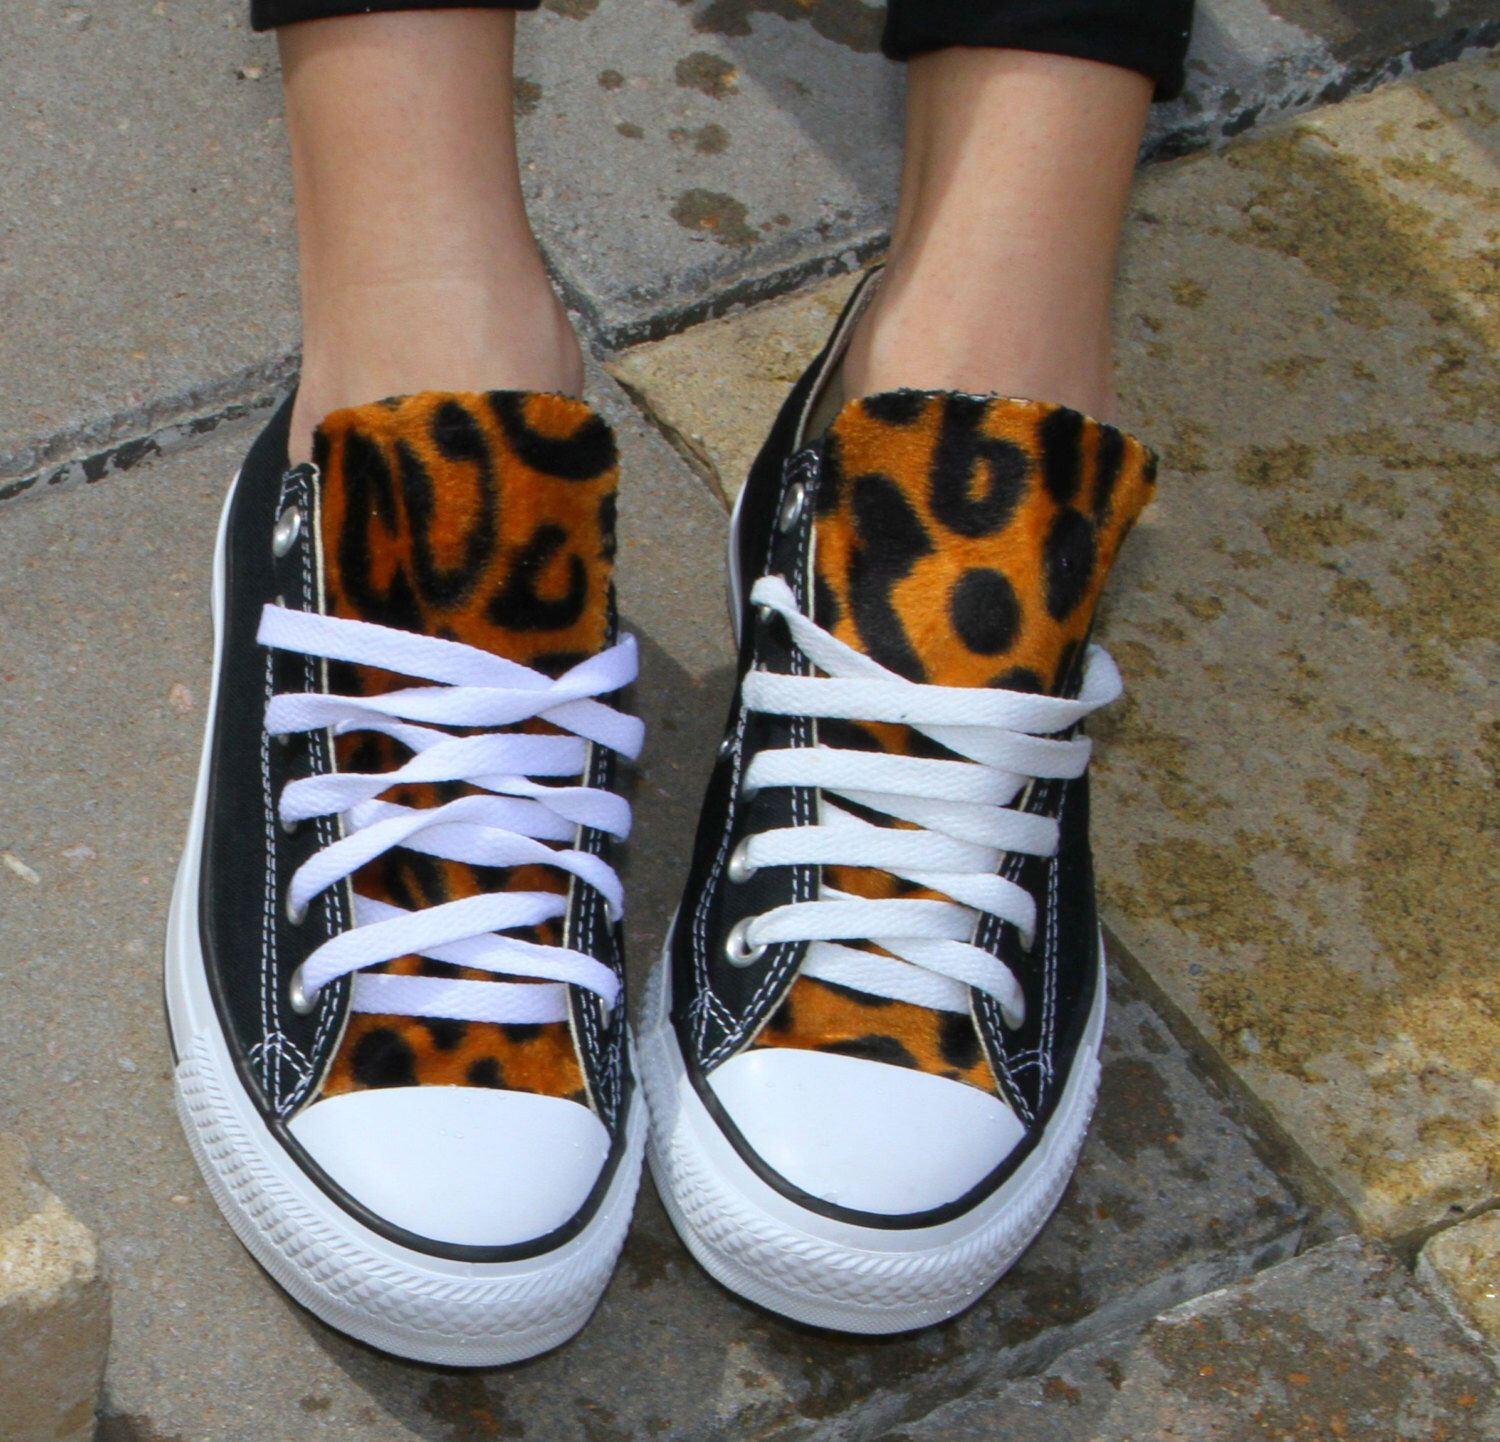 821233b2f4e7 Converse Leopard Print Chuck Taylors All Star Shoe Custom All Sizes by  LoveChuckTaylors on Etsy https